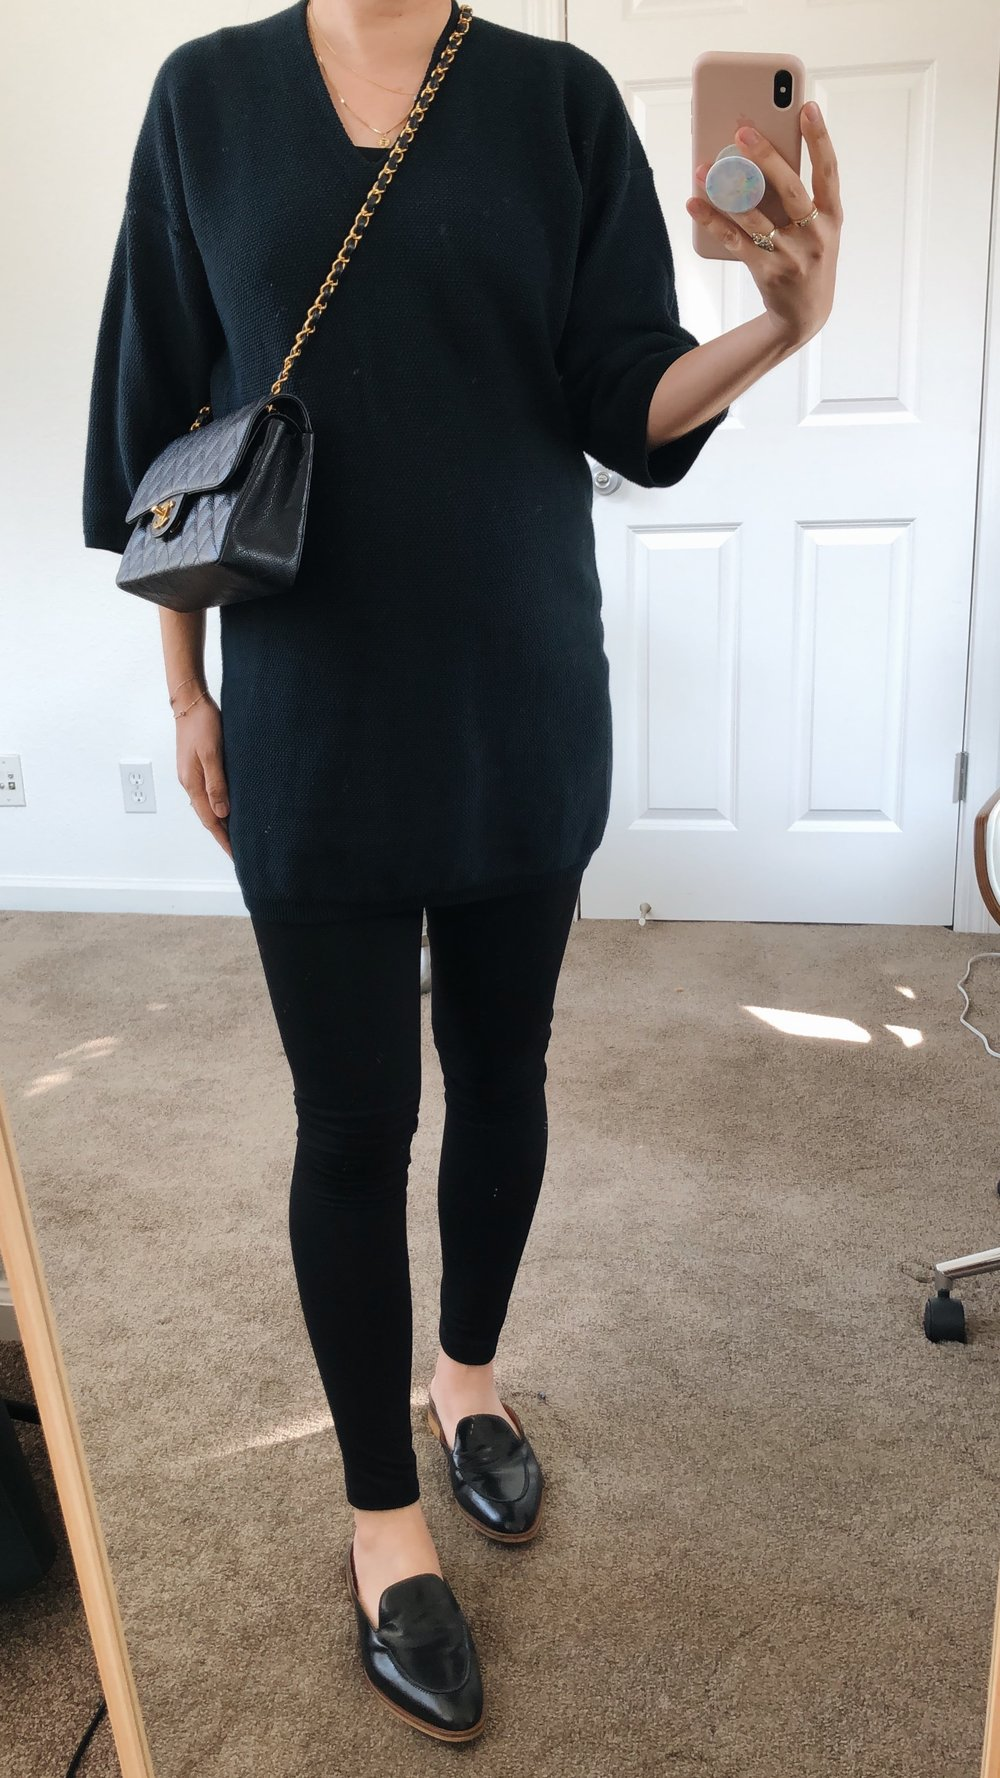 Storq Leggings Review